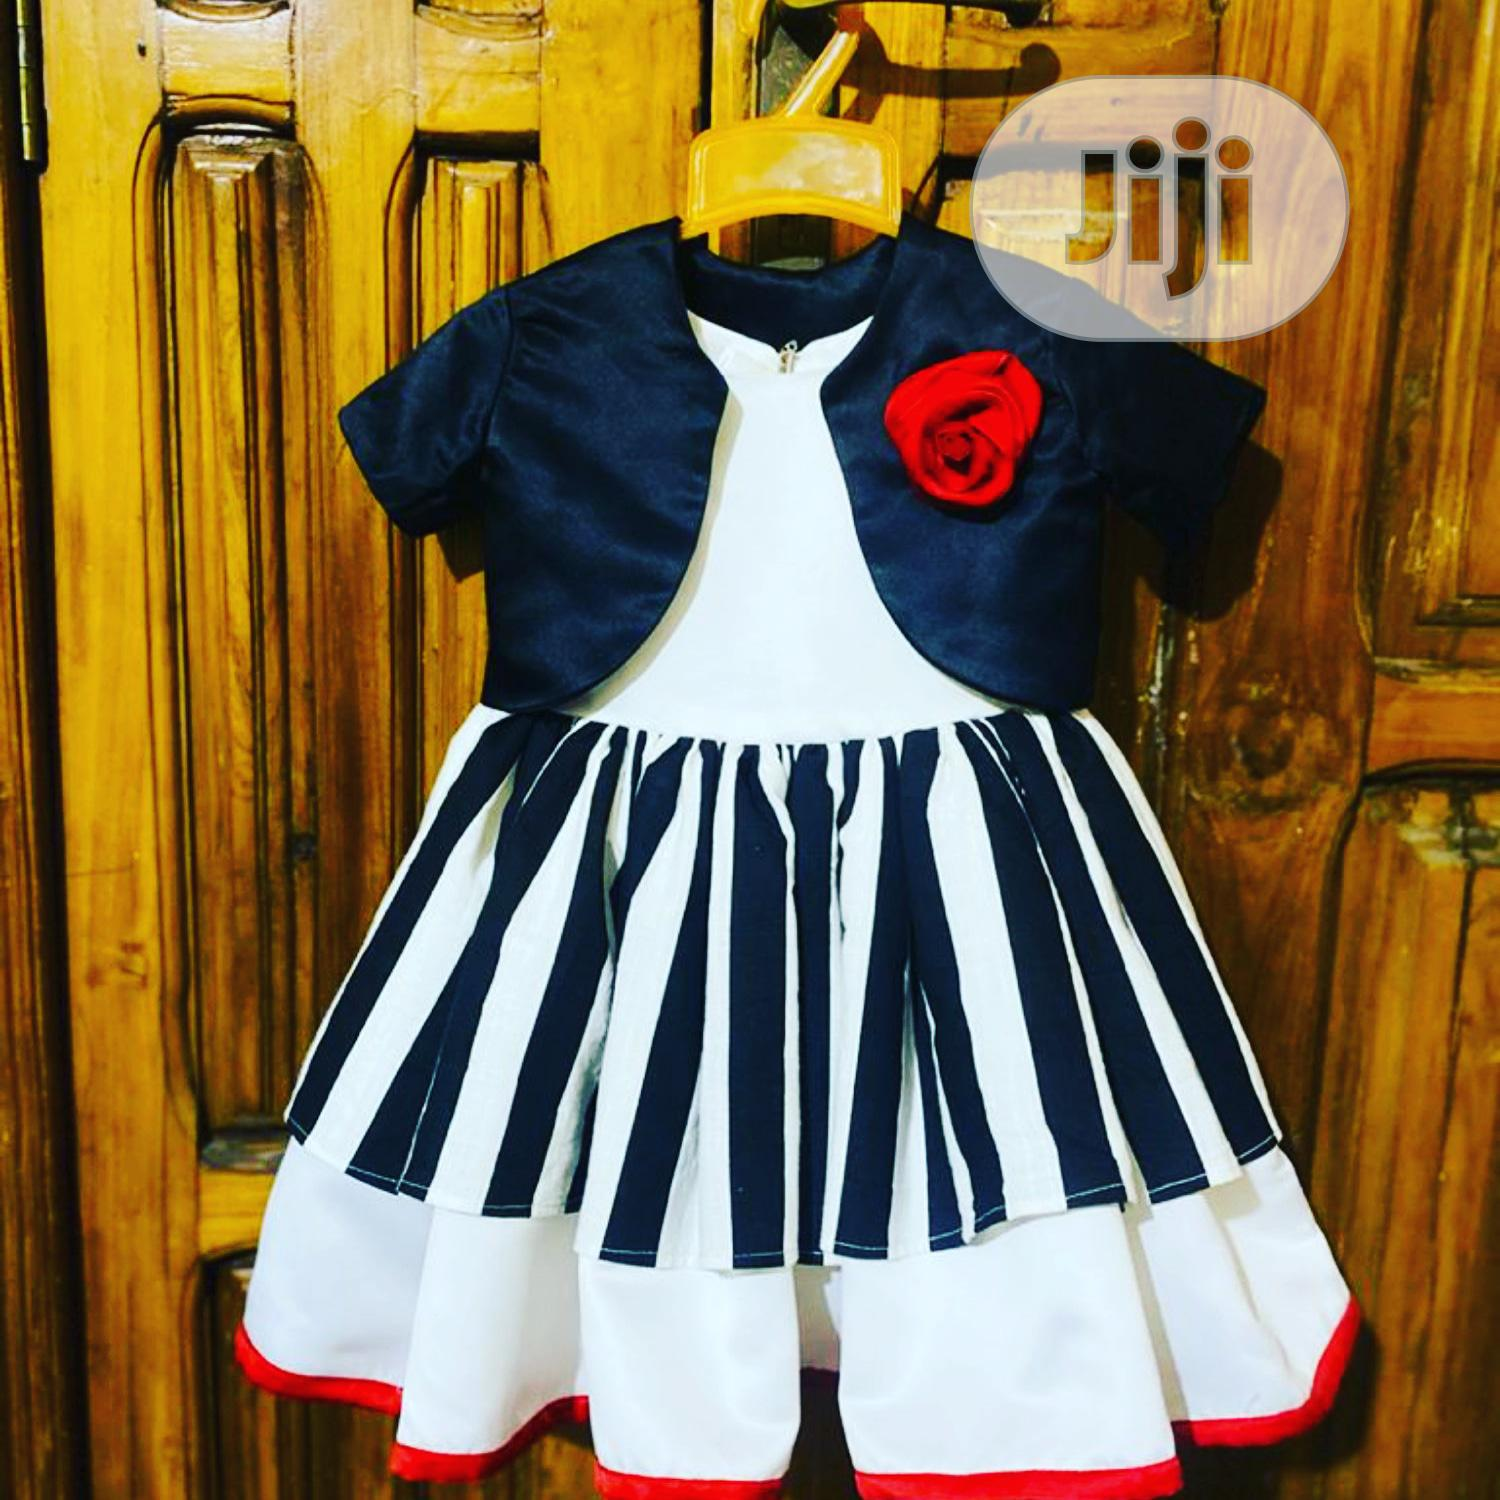 2pieces Awosome Dress for Girls.